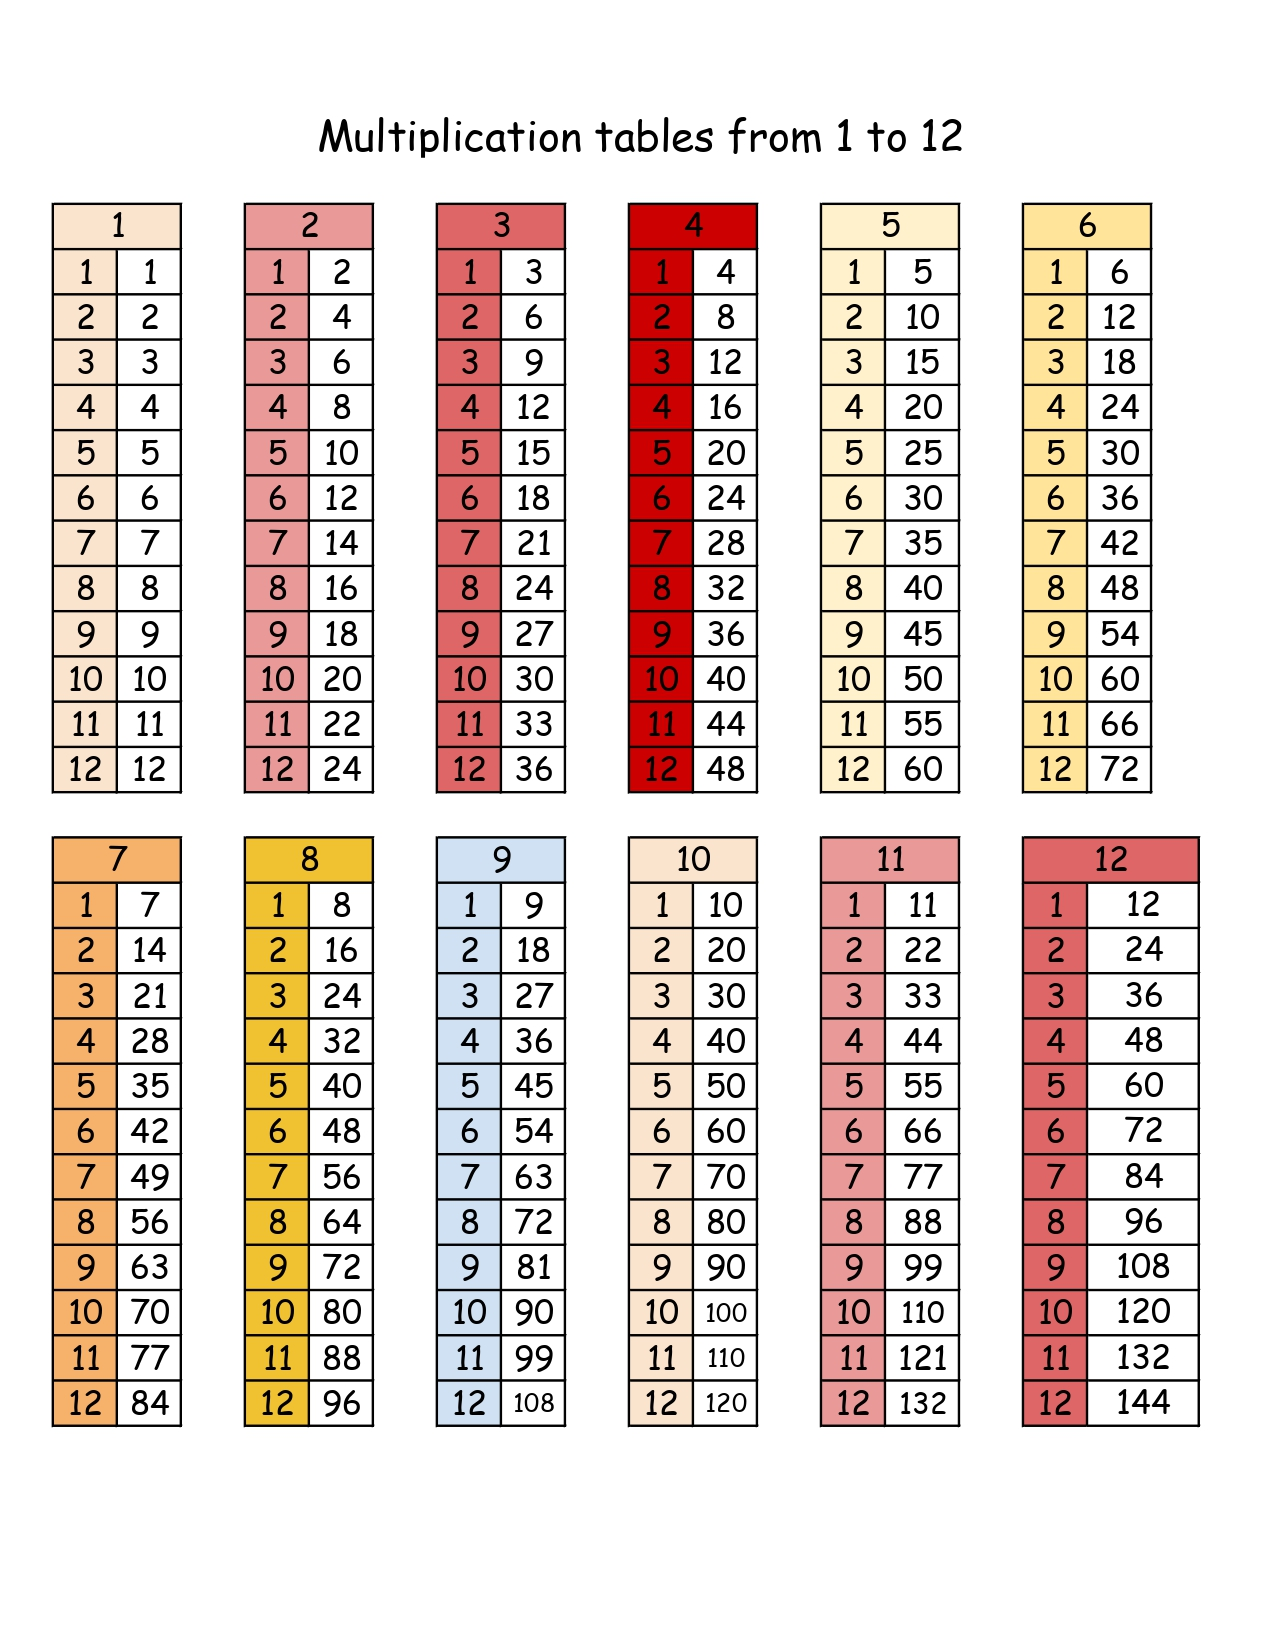 Multiplication tables from 1 to 12